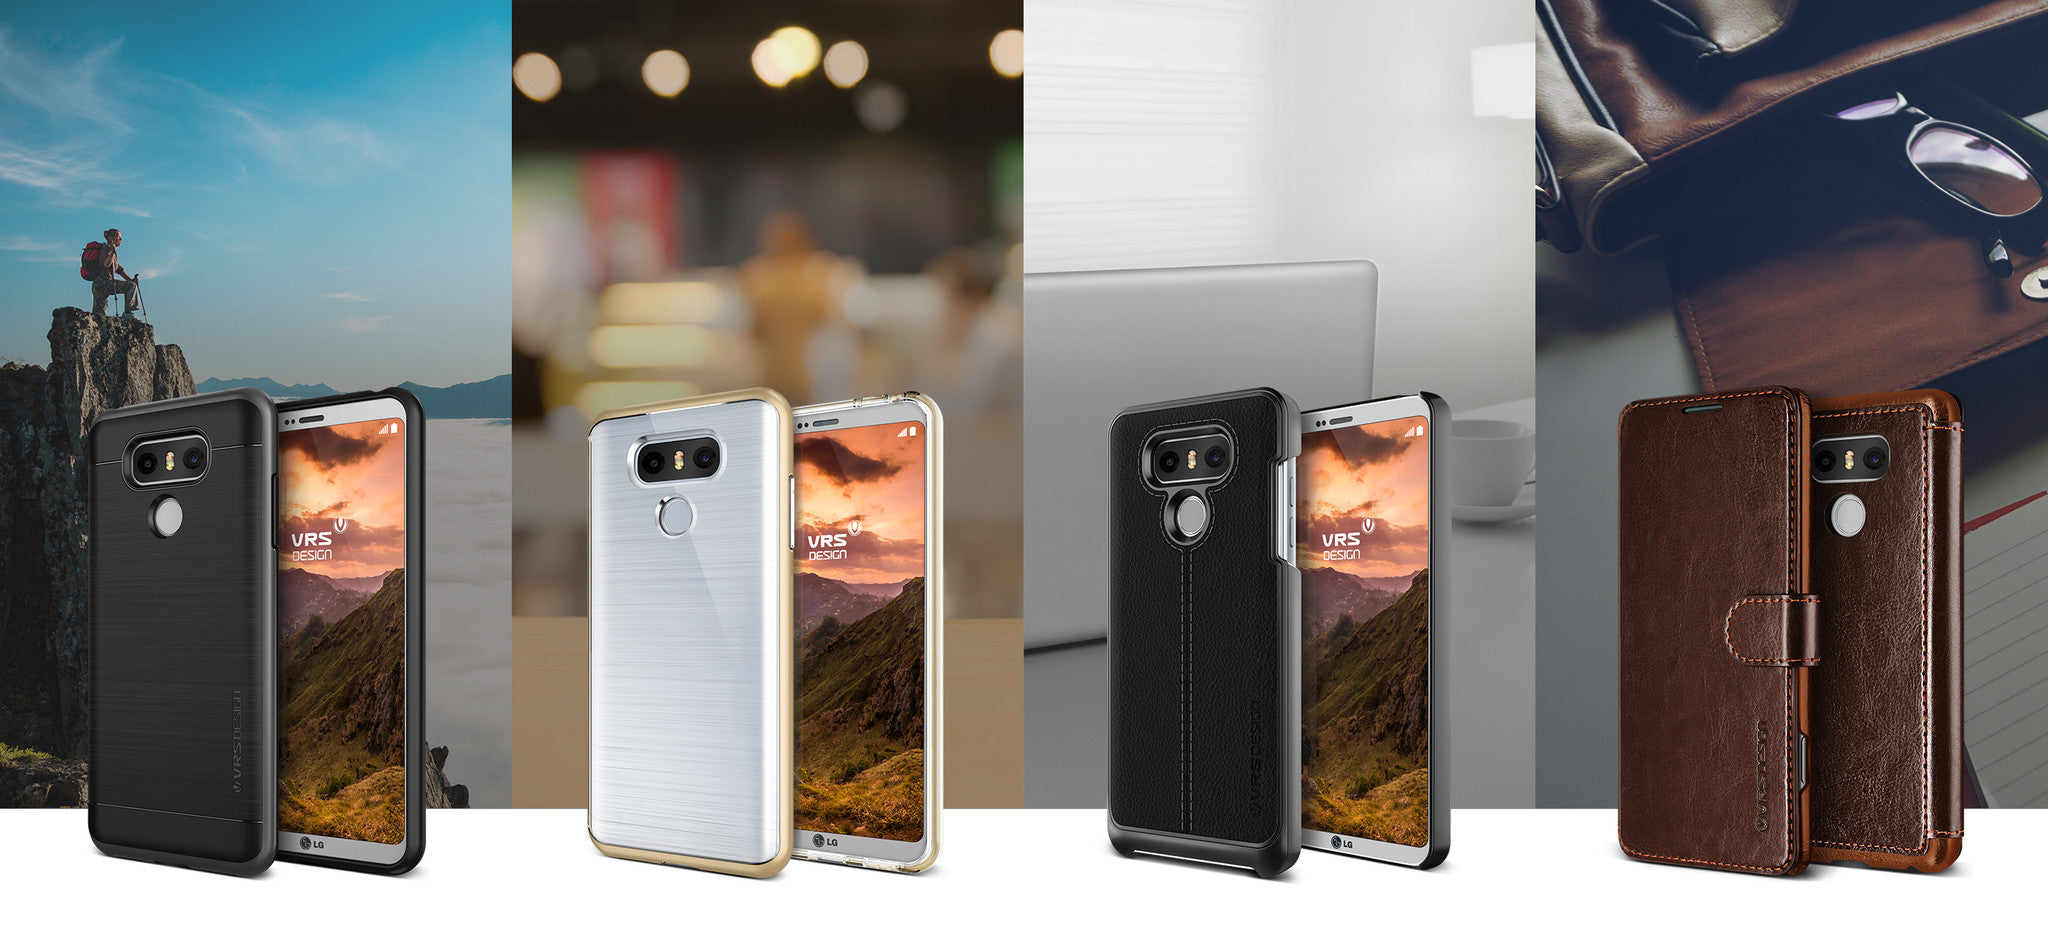 Complement Your Daily Look: Sleek & Slim LG G6 Cases from VRS Design